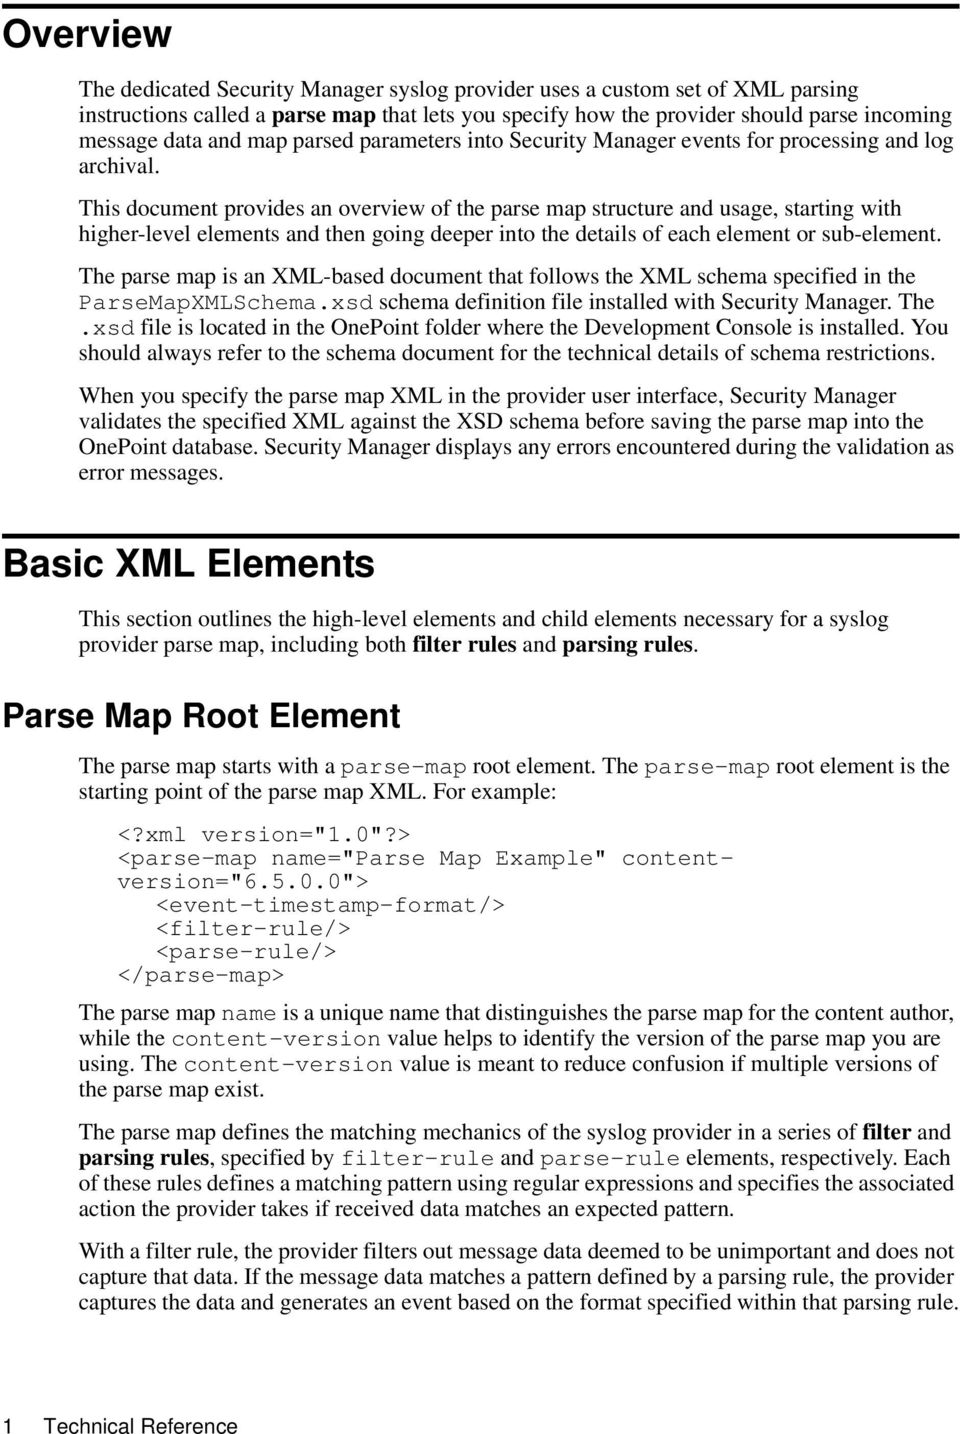 This document provides an overview of the parse map structure and usage, starting with higher-level elements and then going deeper into the details of each element or sub-element.